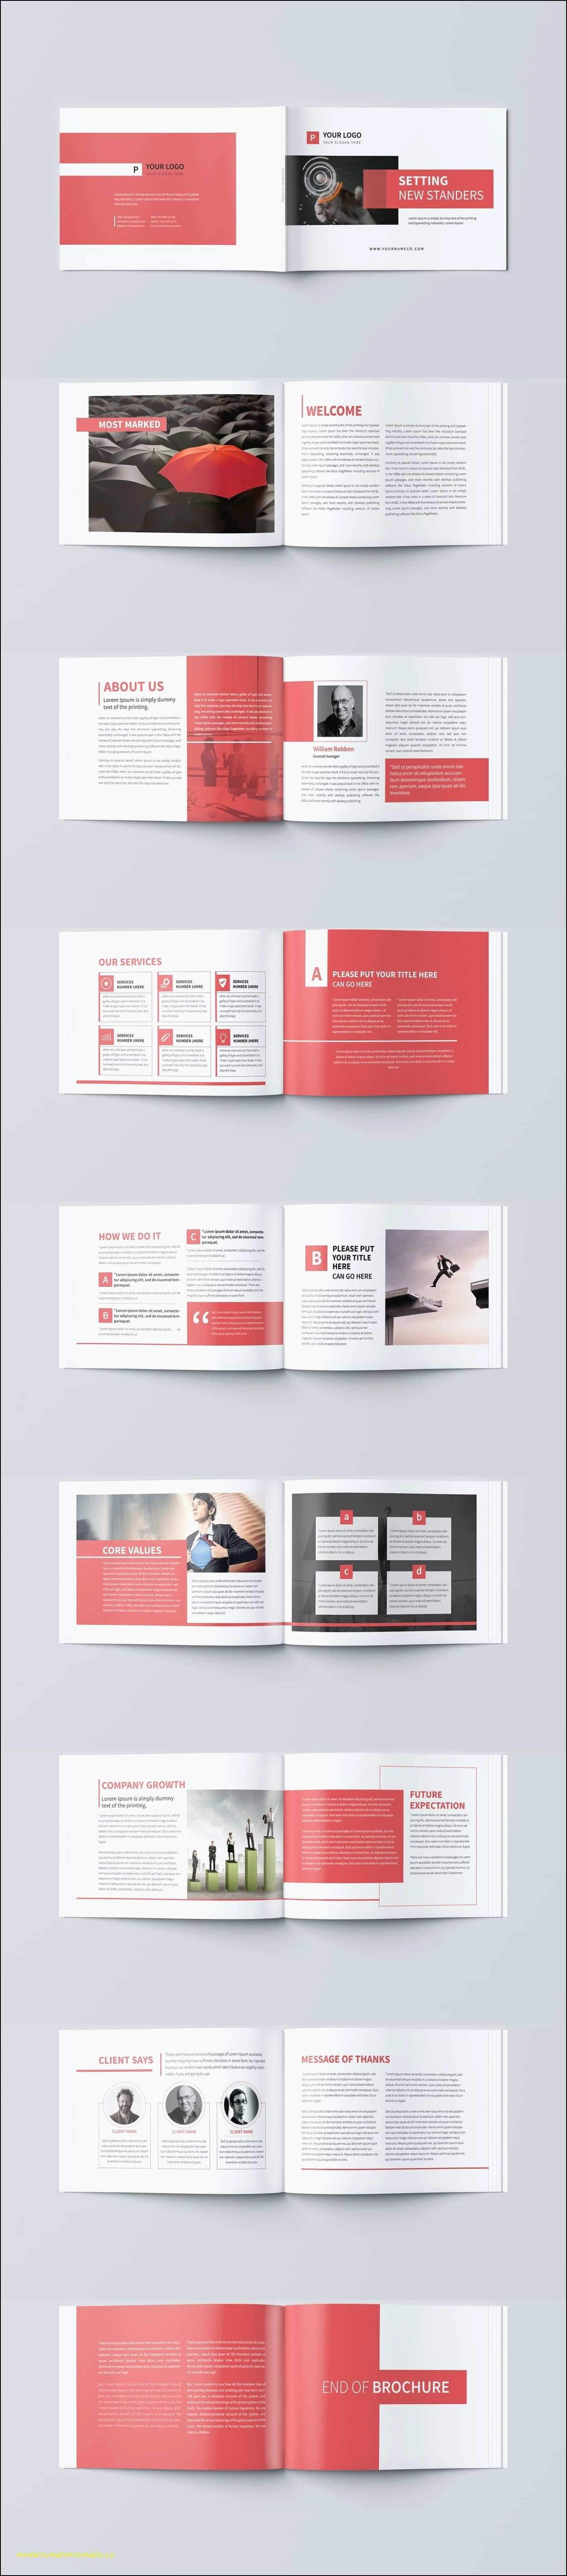 Awesome 29 Half Fold Brochure Template Booklet Design Brochure Design Inspiration Brochure Layout